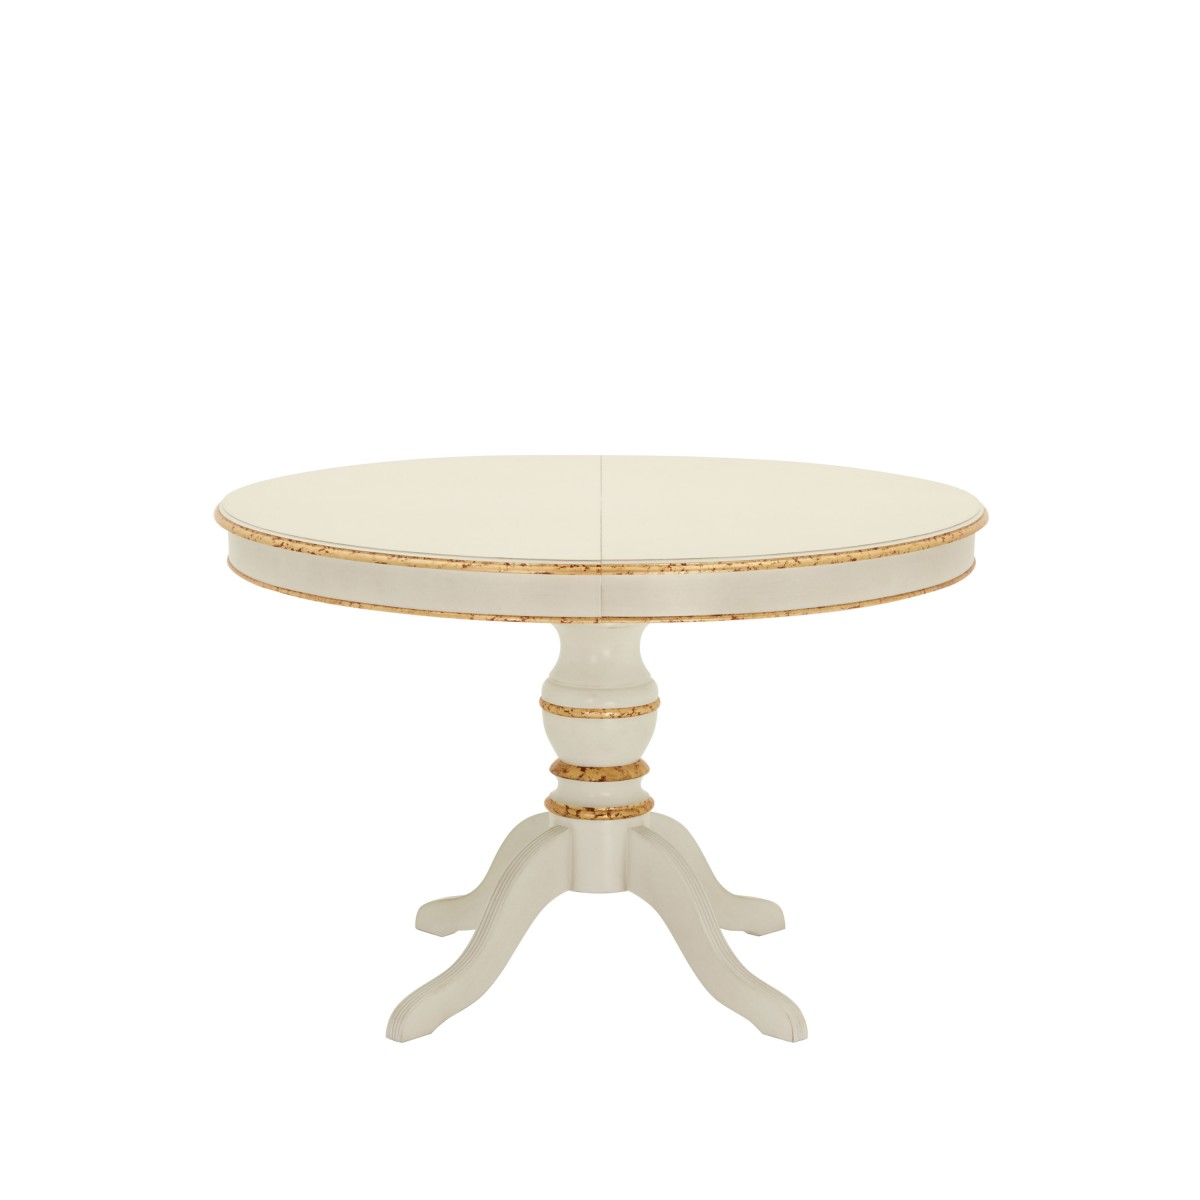 8515 classic style wood table pallante3